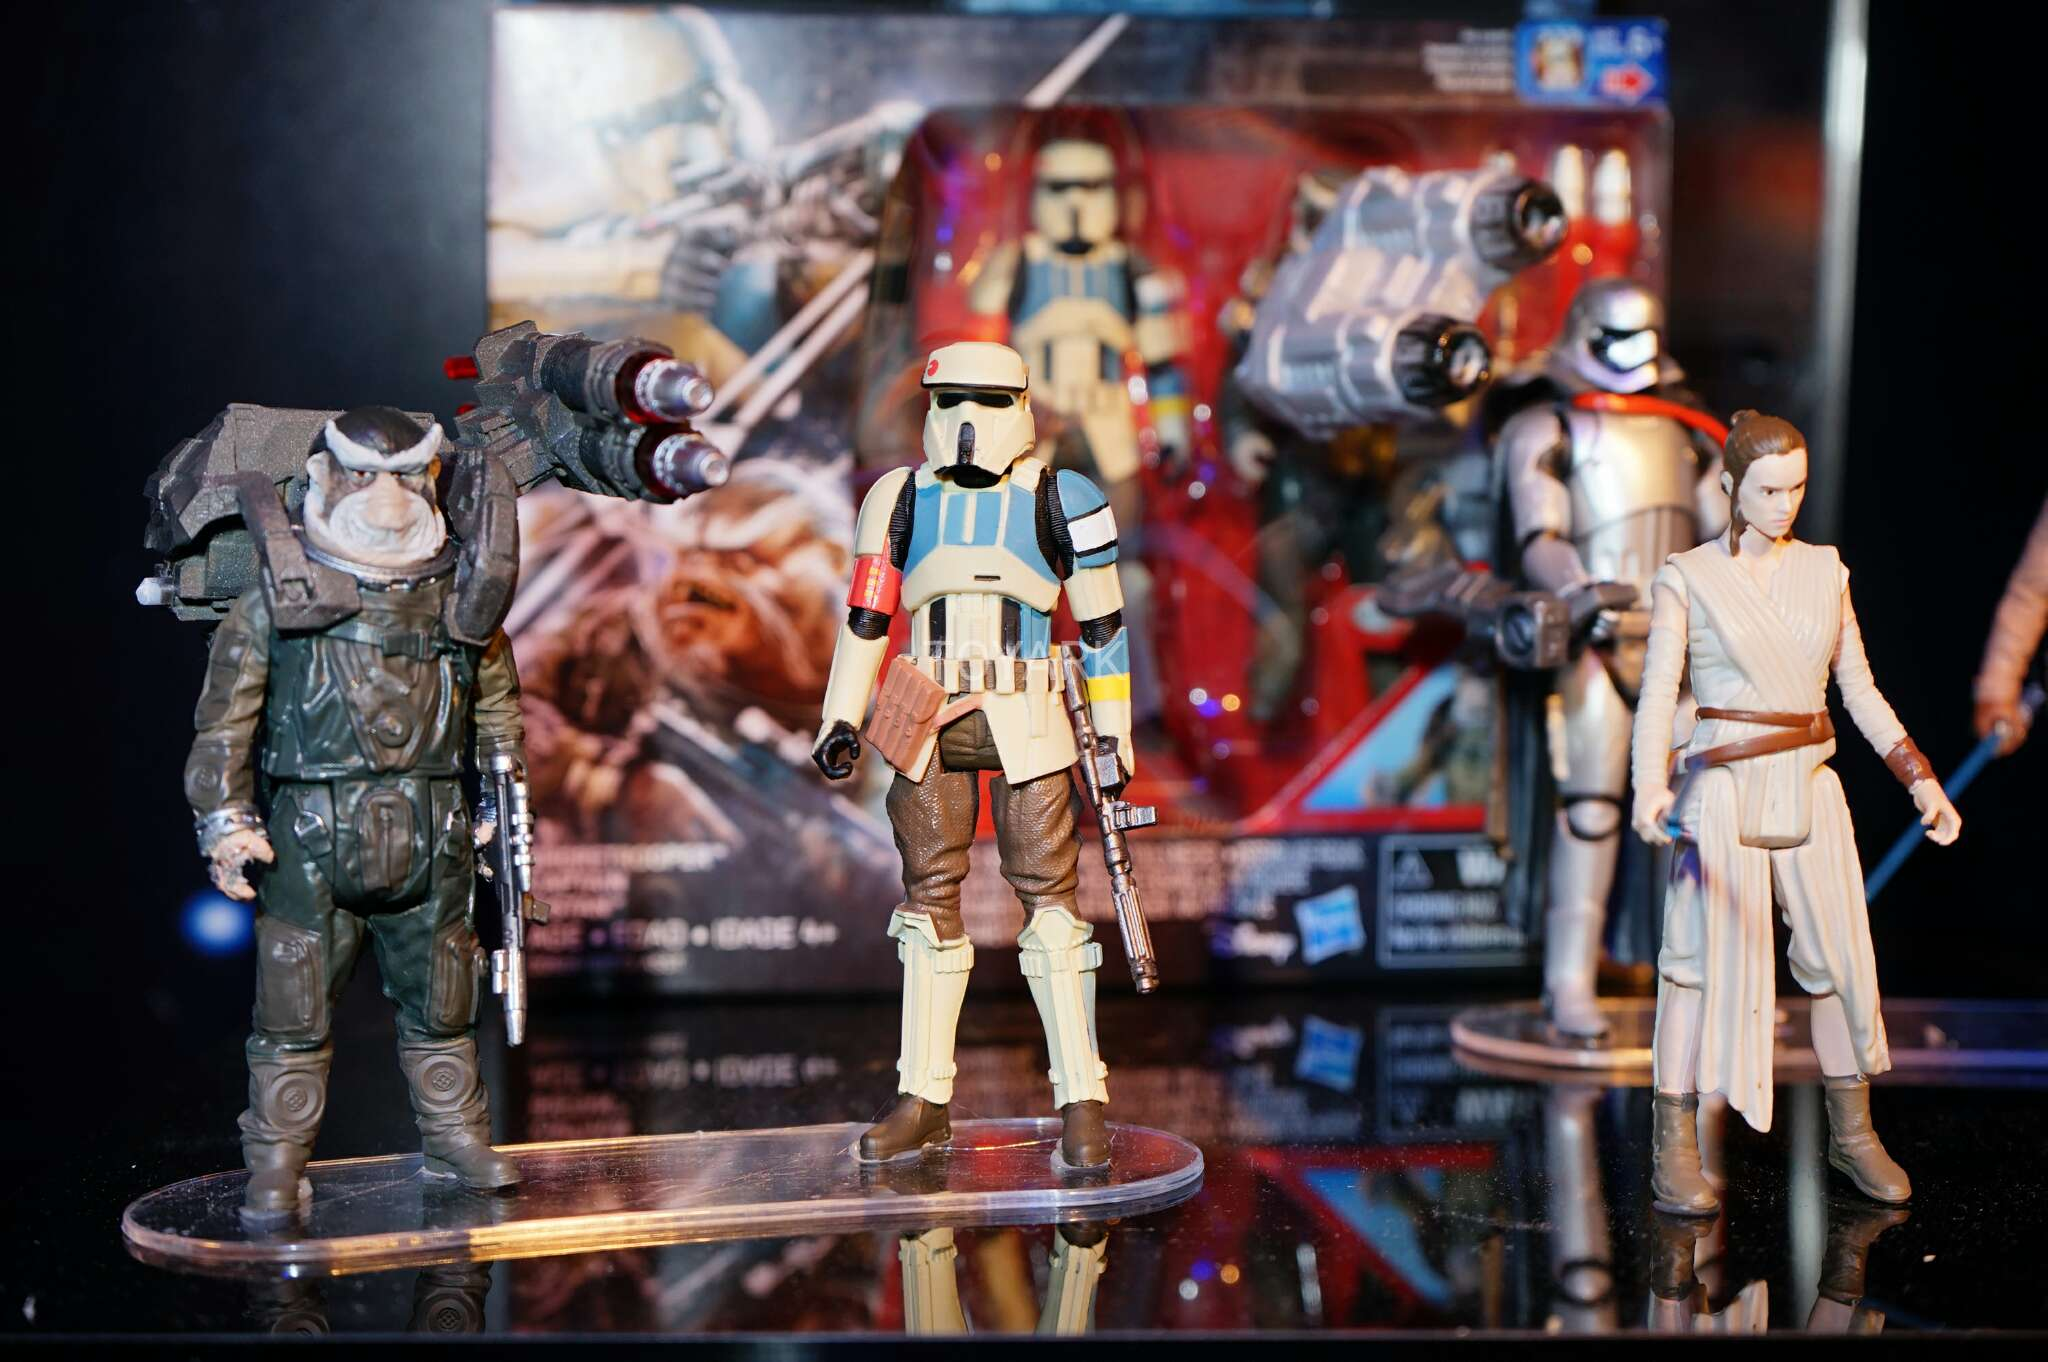 Star Wars Toys Hasbro : Toy fair hasbro star wars the toyark news